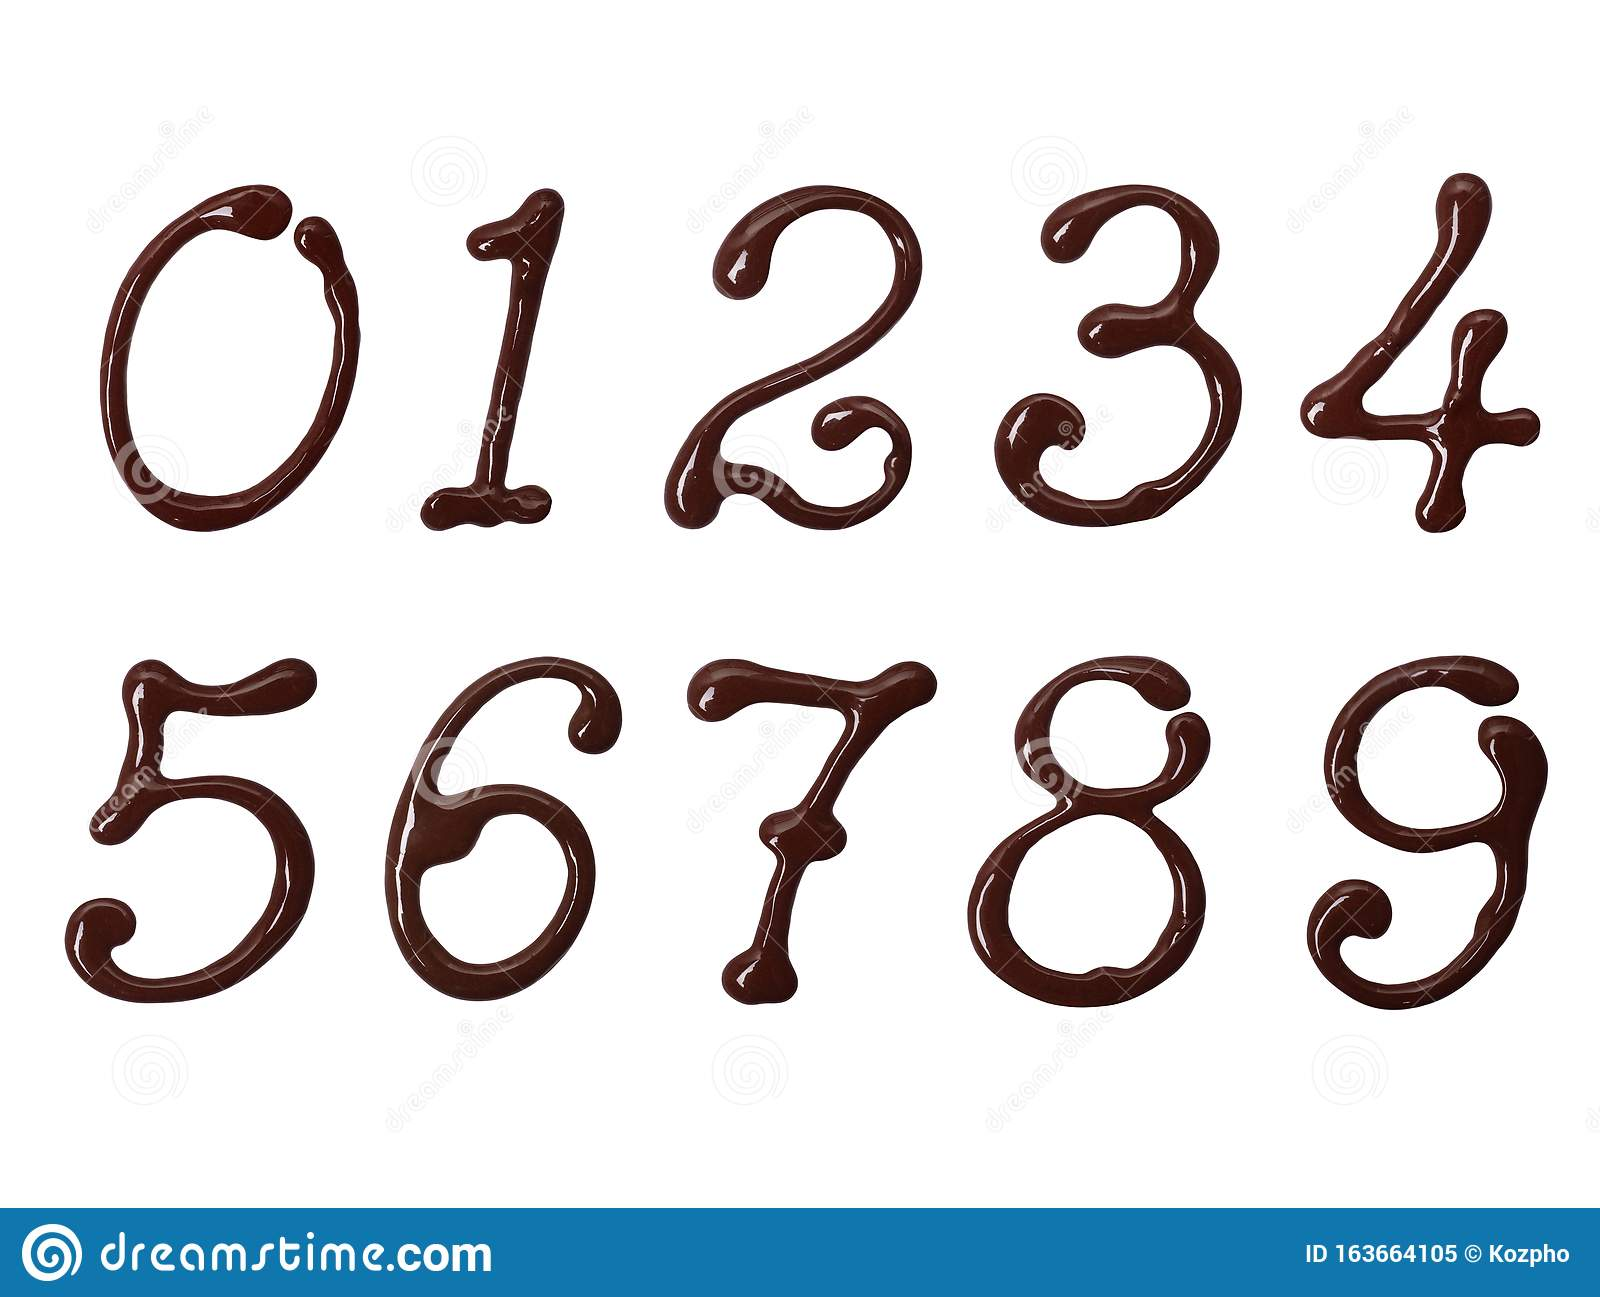 Numbers Made Of Elegant Chocolate Font With Swirls ...